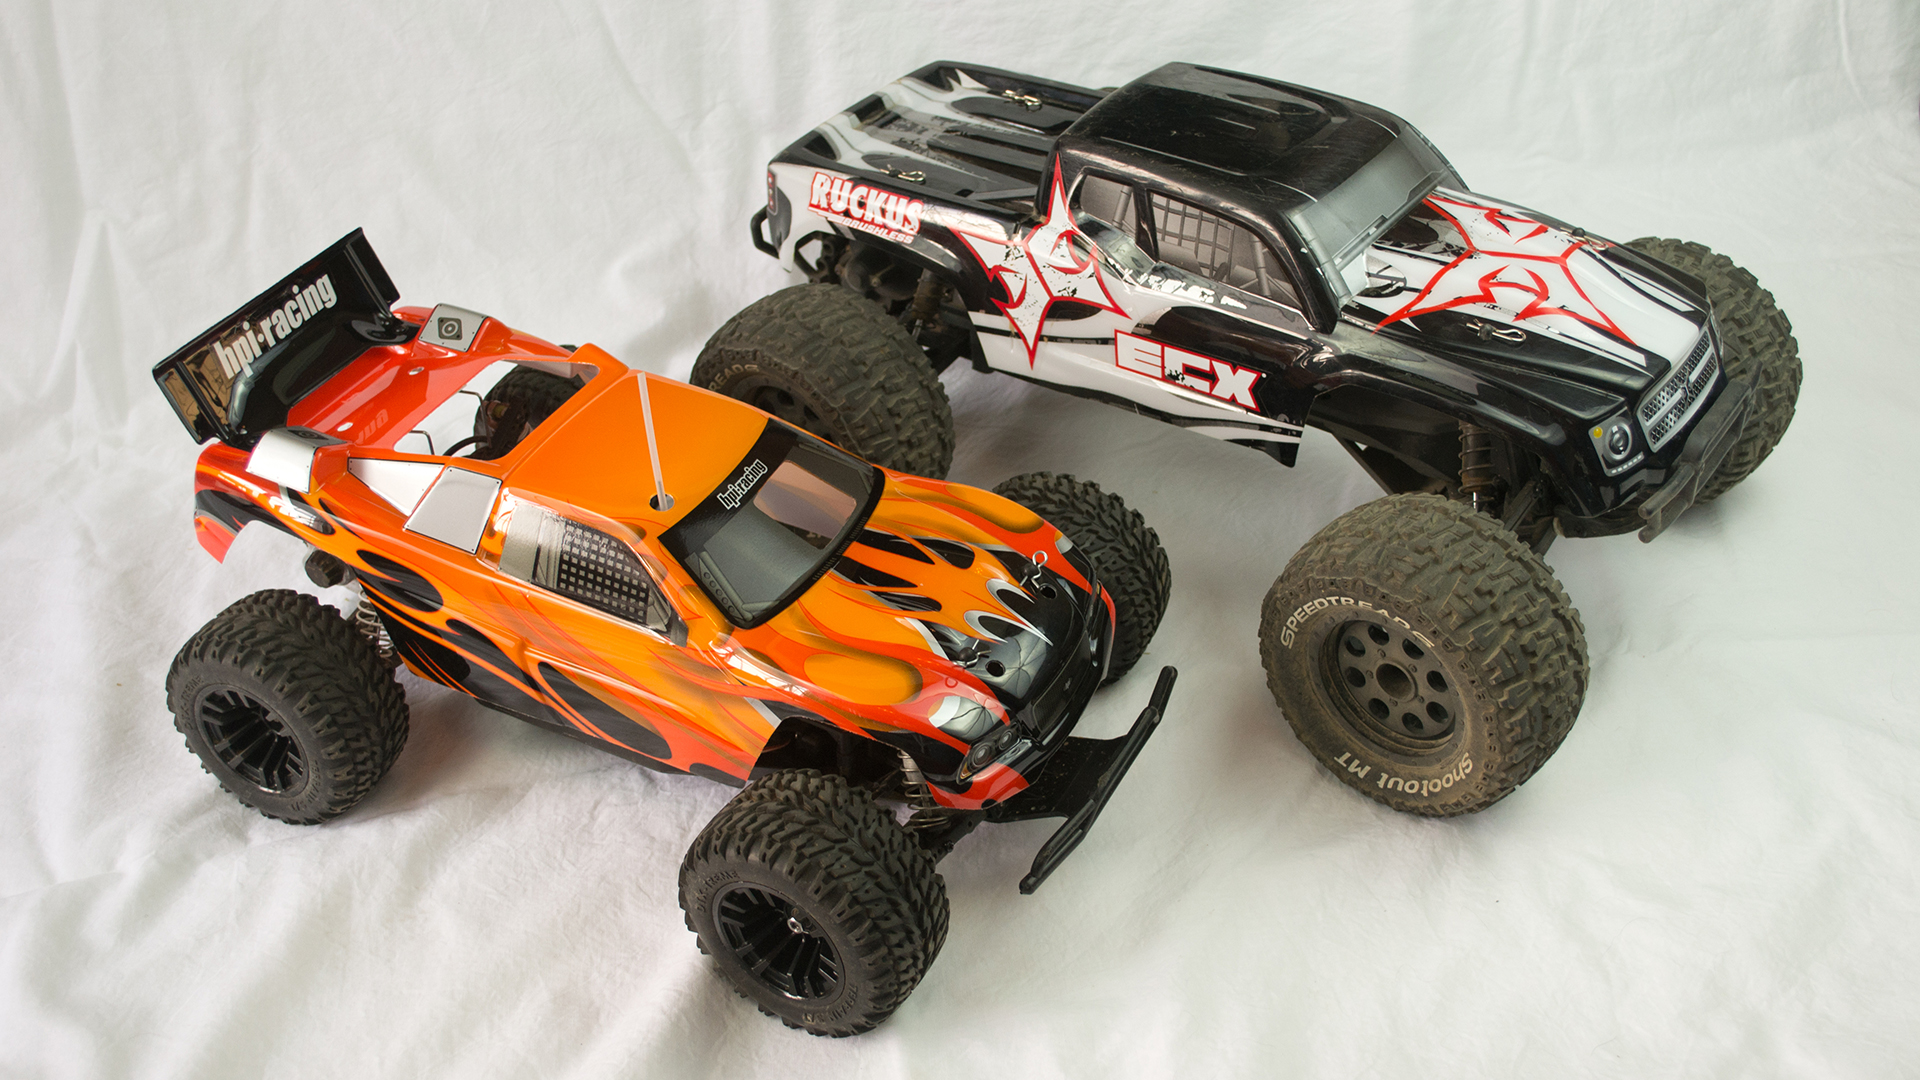 rc cars monster truck with 460774 How Get Hobby Rc Upgrading Your Car And Batteries on HPIRacingMT2G301104WDNitroRTRRCTruck additionally Axial Smt10 Max D Monster Jam Truck 1 10 4wd Rtr in addition 460774 How Get Hobby Rc Upgrading Your Car And Batteries moreover 0d43d82c505c4317a6cc94ef81aa57d9 in addition monstercars.